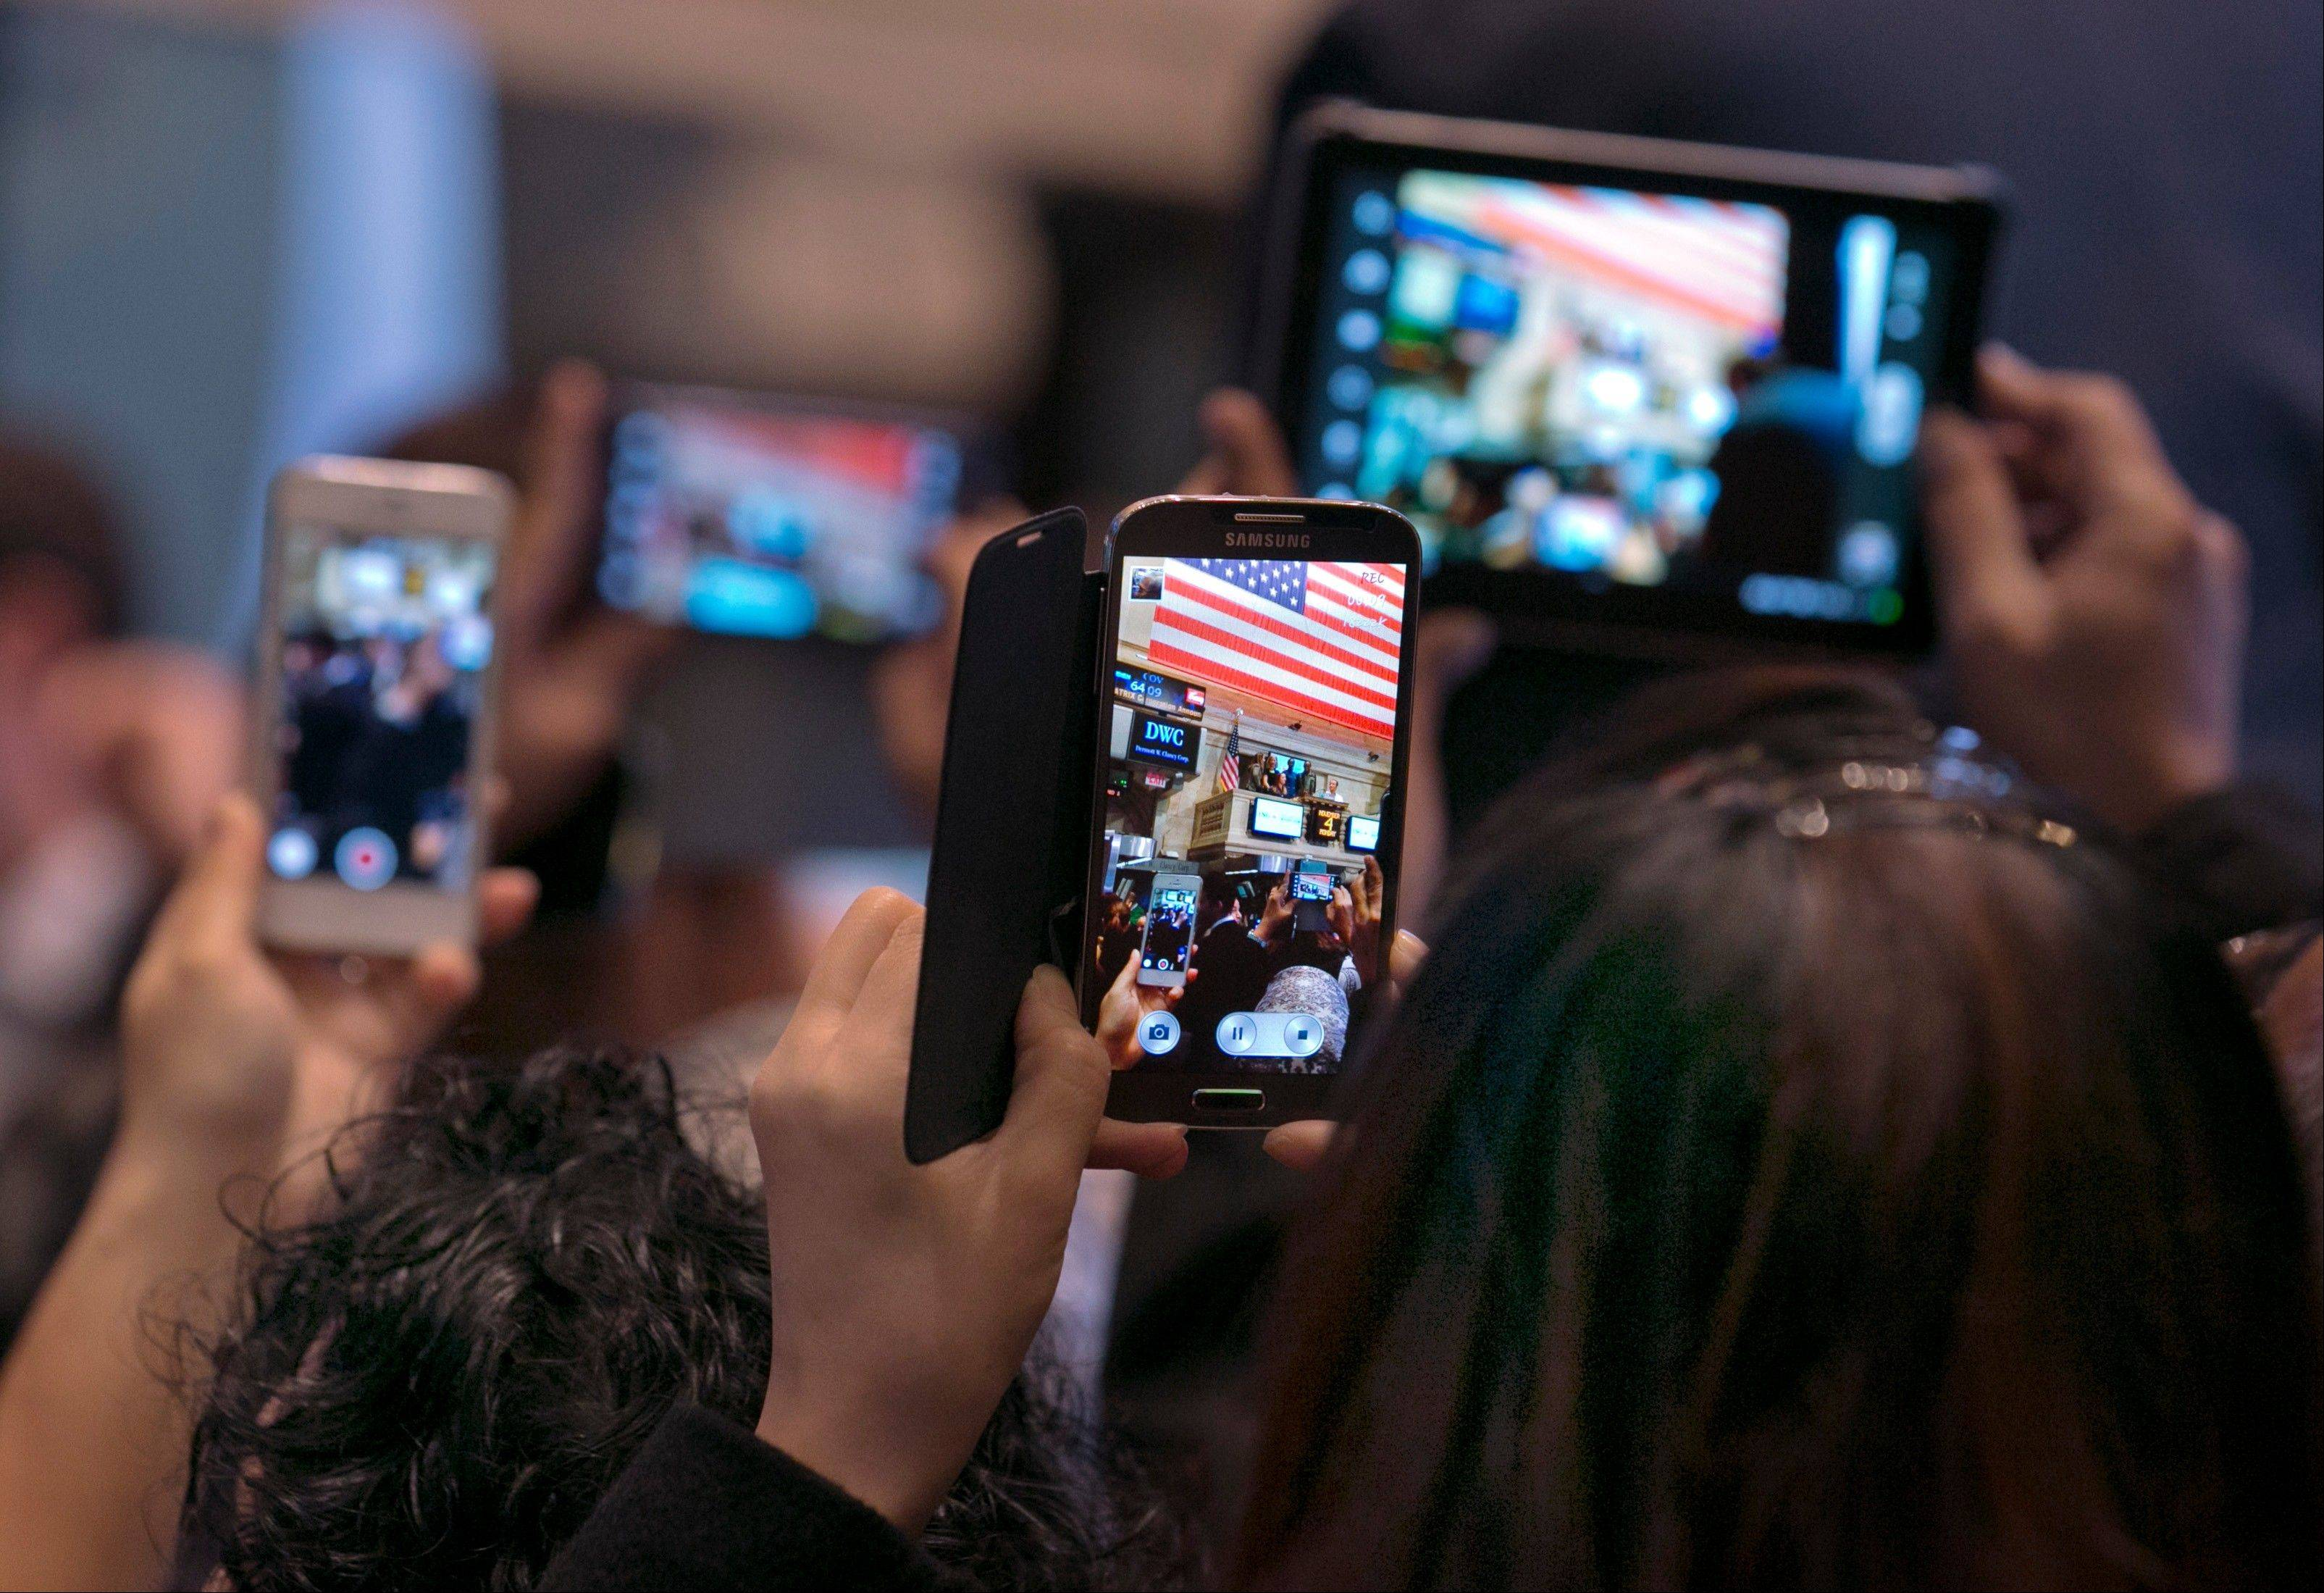 Visitors on the floor of the New York Stock Exchange use their smartphones and tablet devices to photograph the opening bell ceremonies Monday. Twitter's confidence appears to be increasing ahead of its initial public offering set for later this week at the NYSE, as 7-year-old short messaging service on Monday boosted the price range for the IPO.